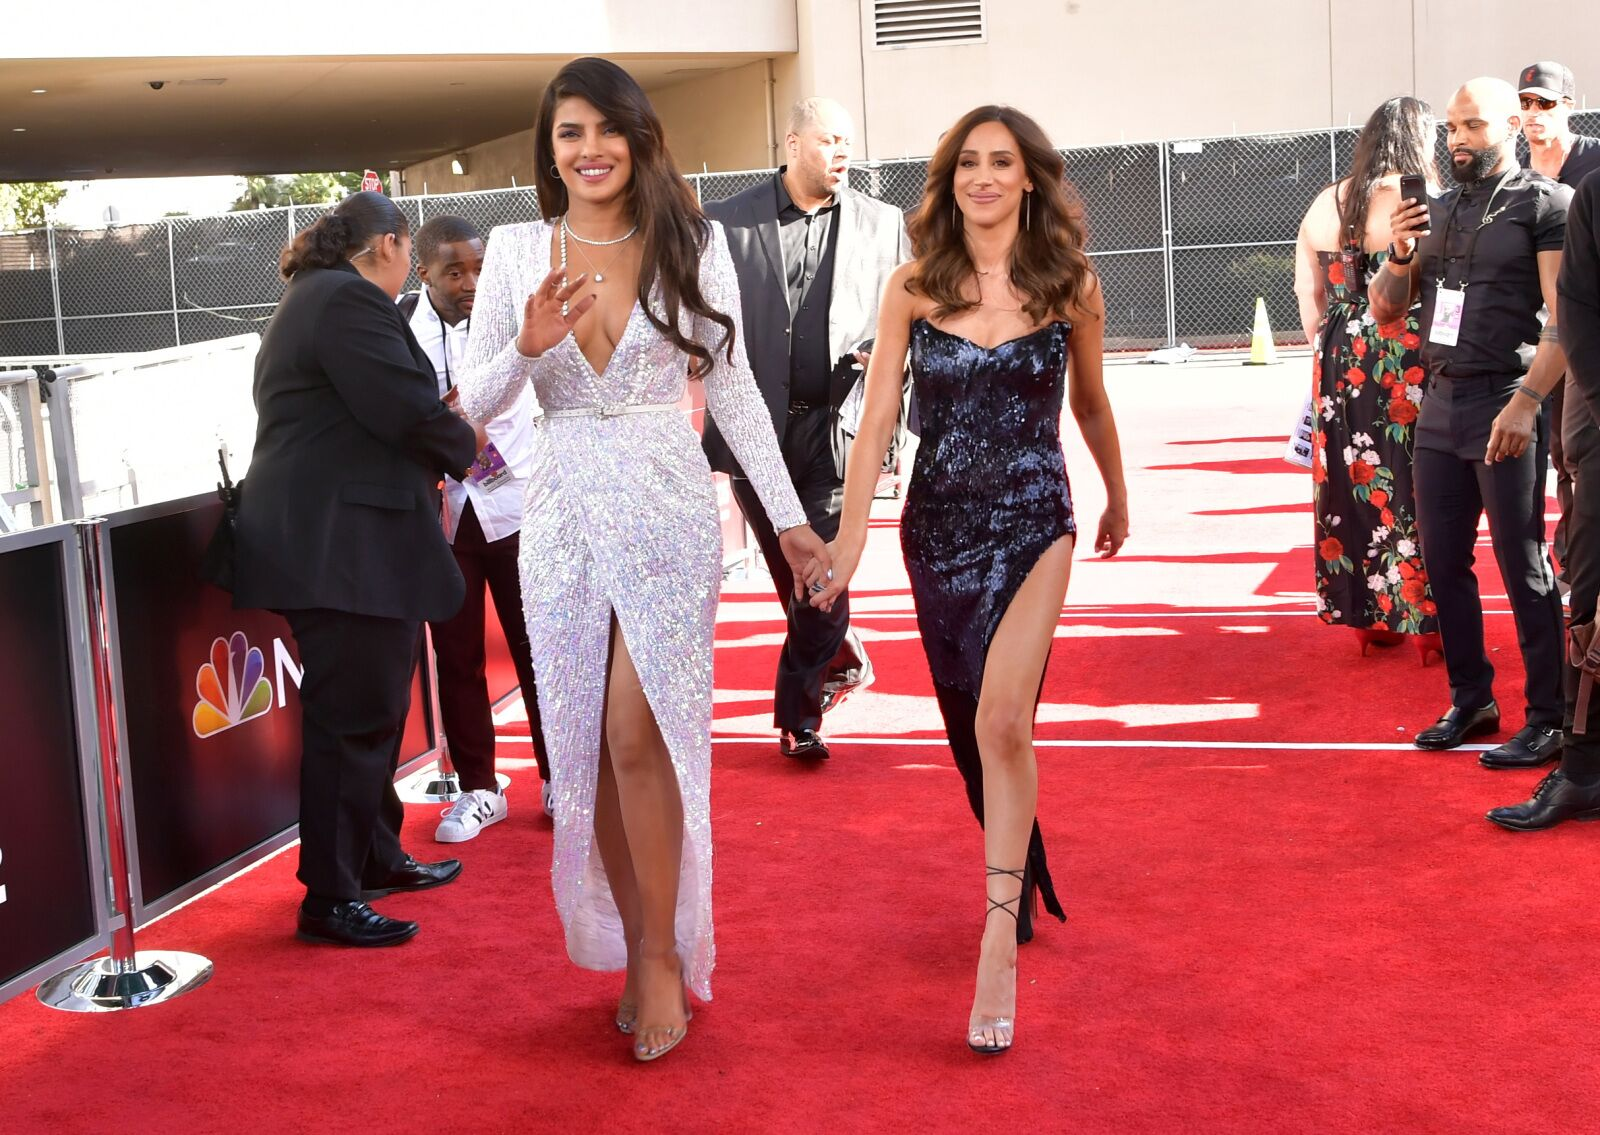 11 most memorable looks at the Billboard Music Awards